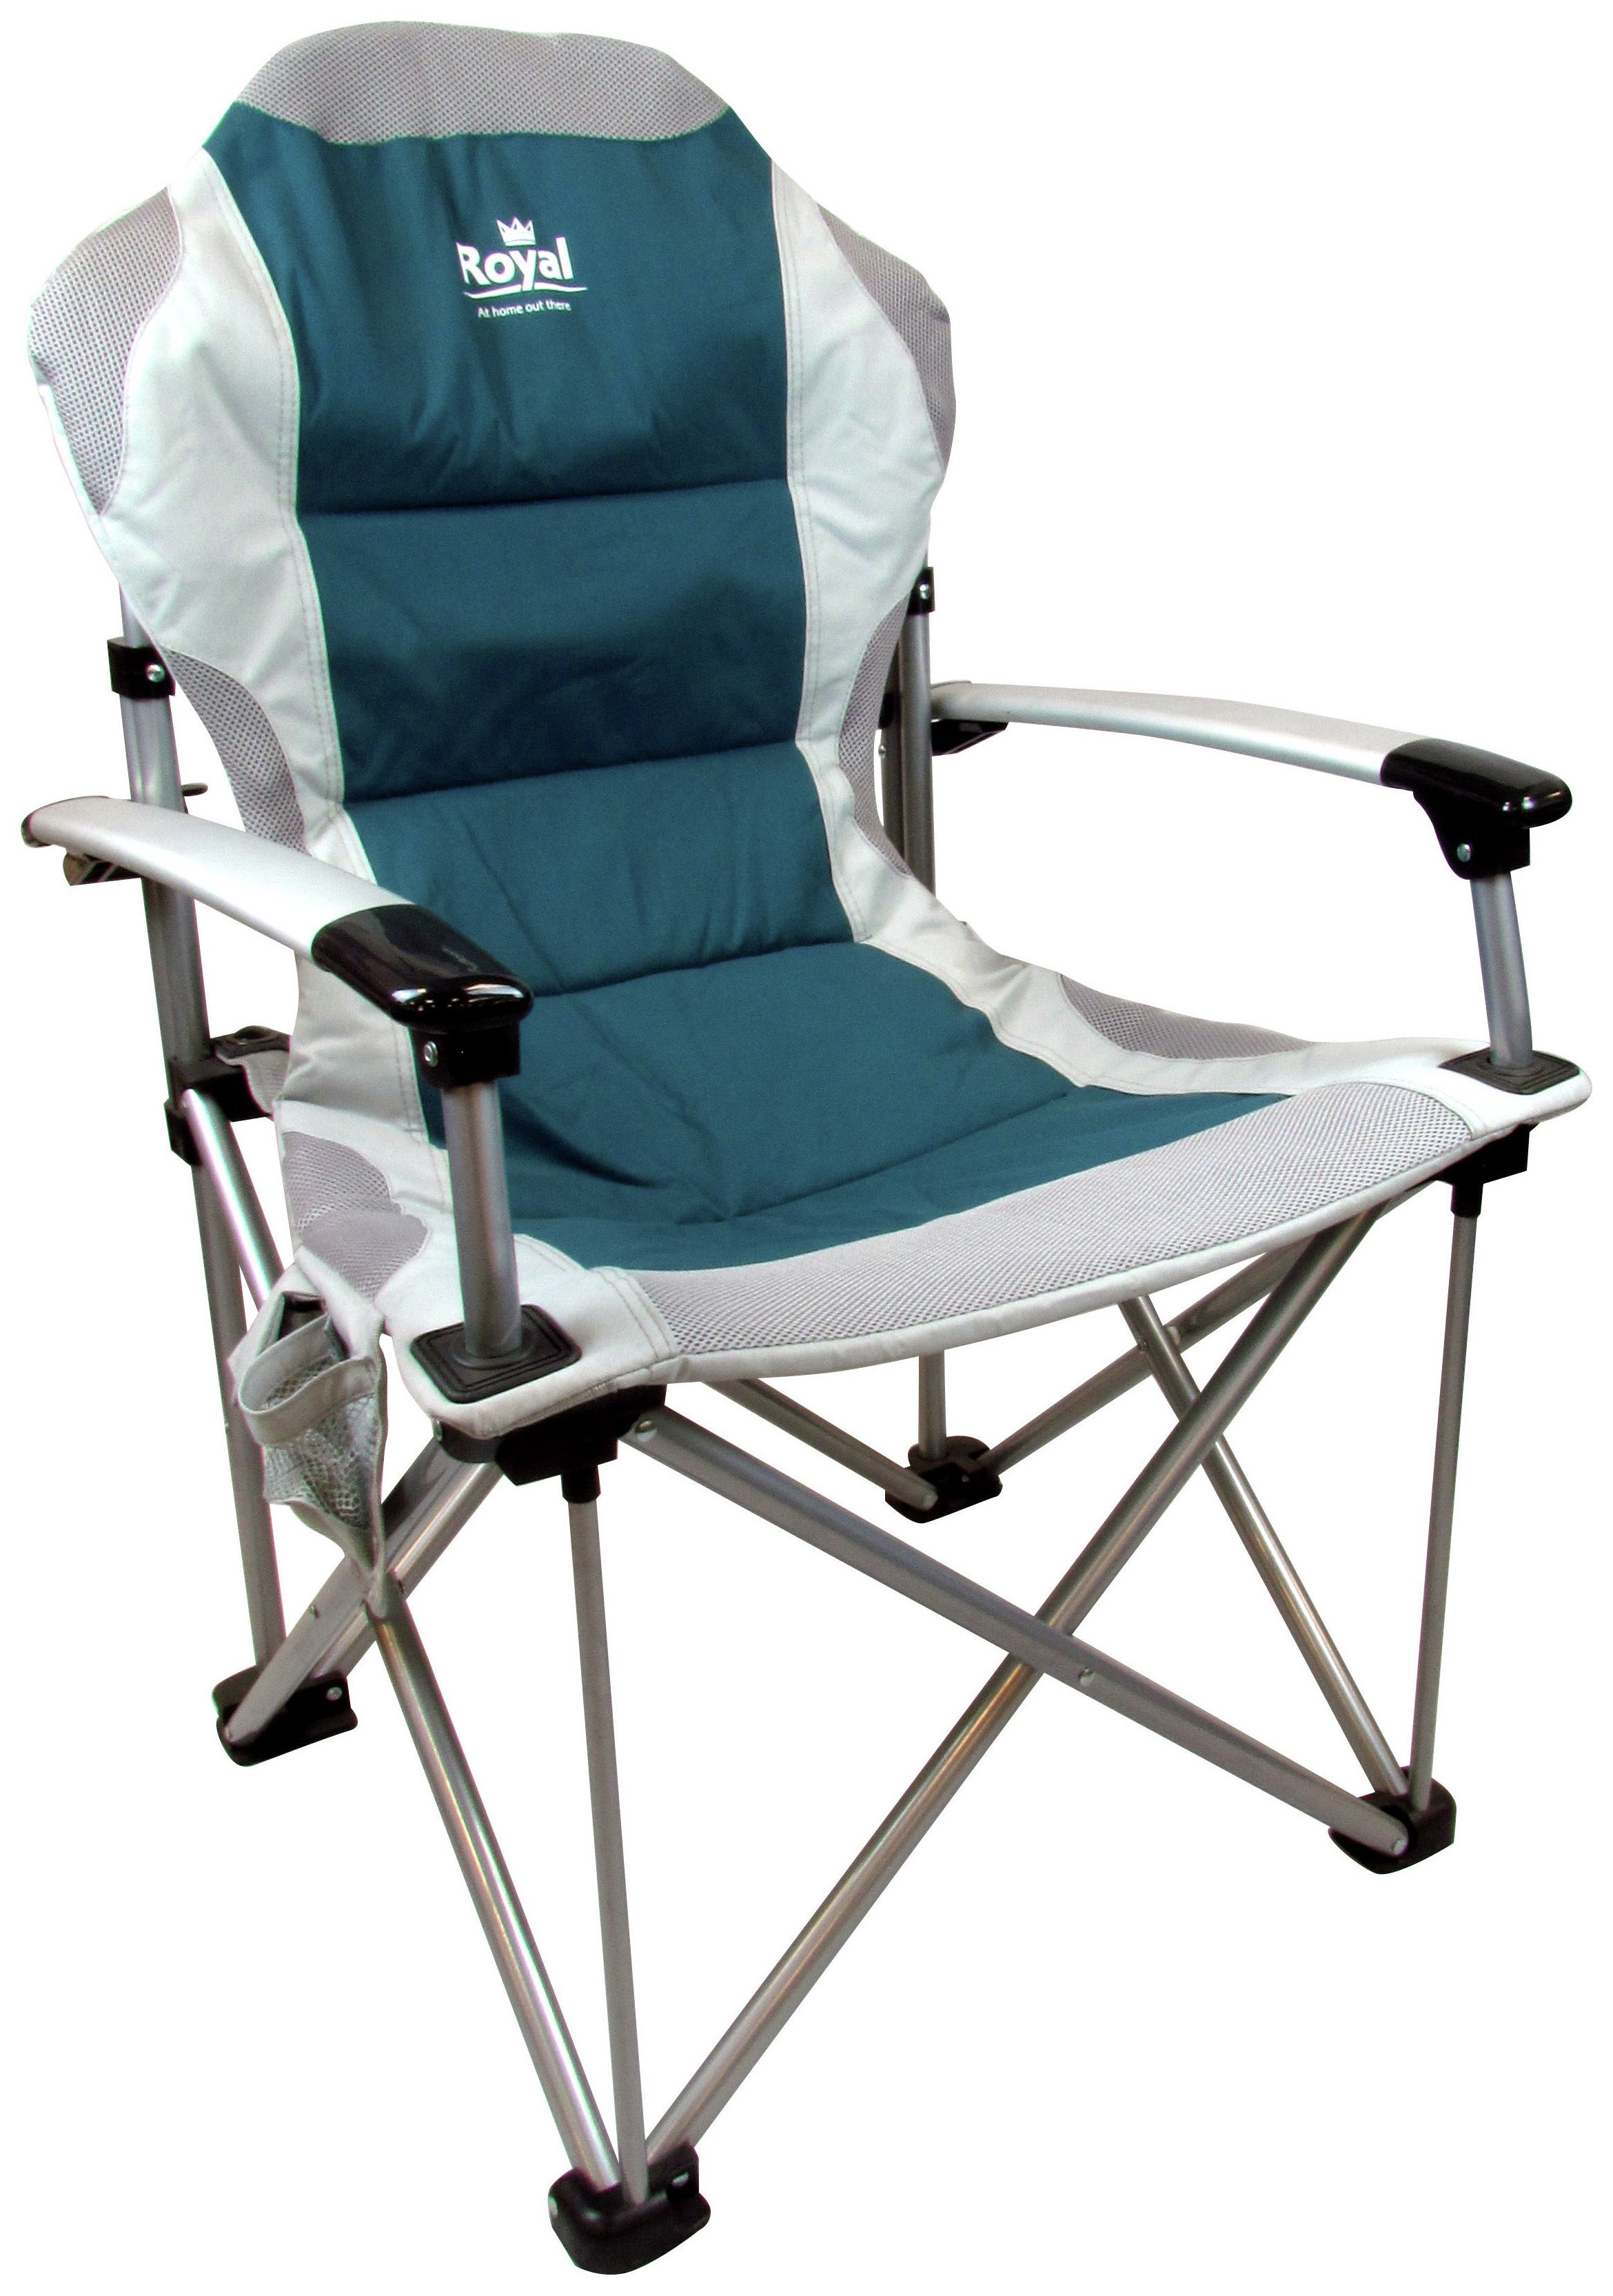 portable chairs argos childrens wooden table and set royal commander chair review